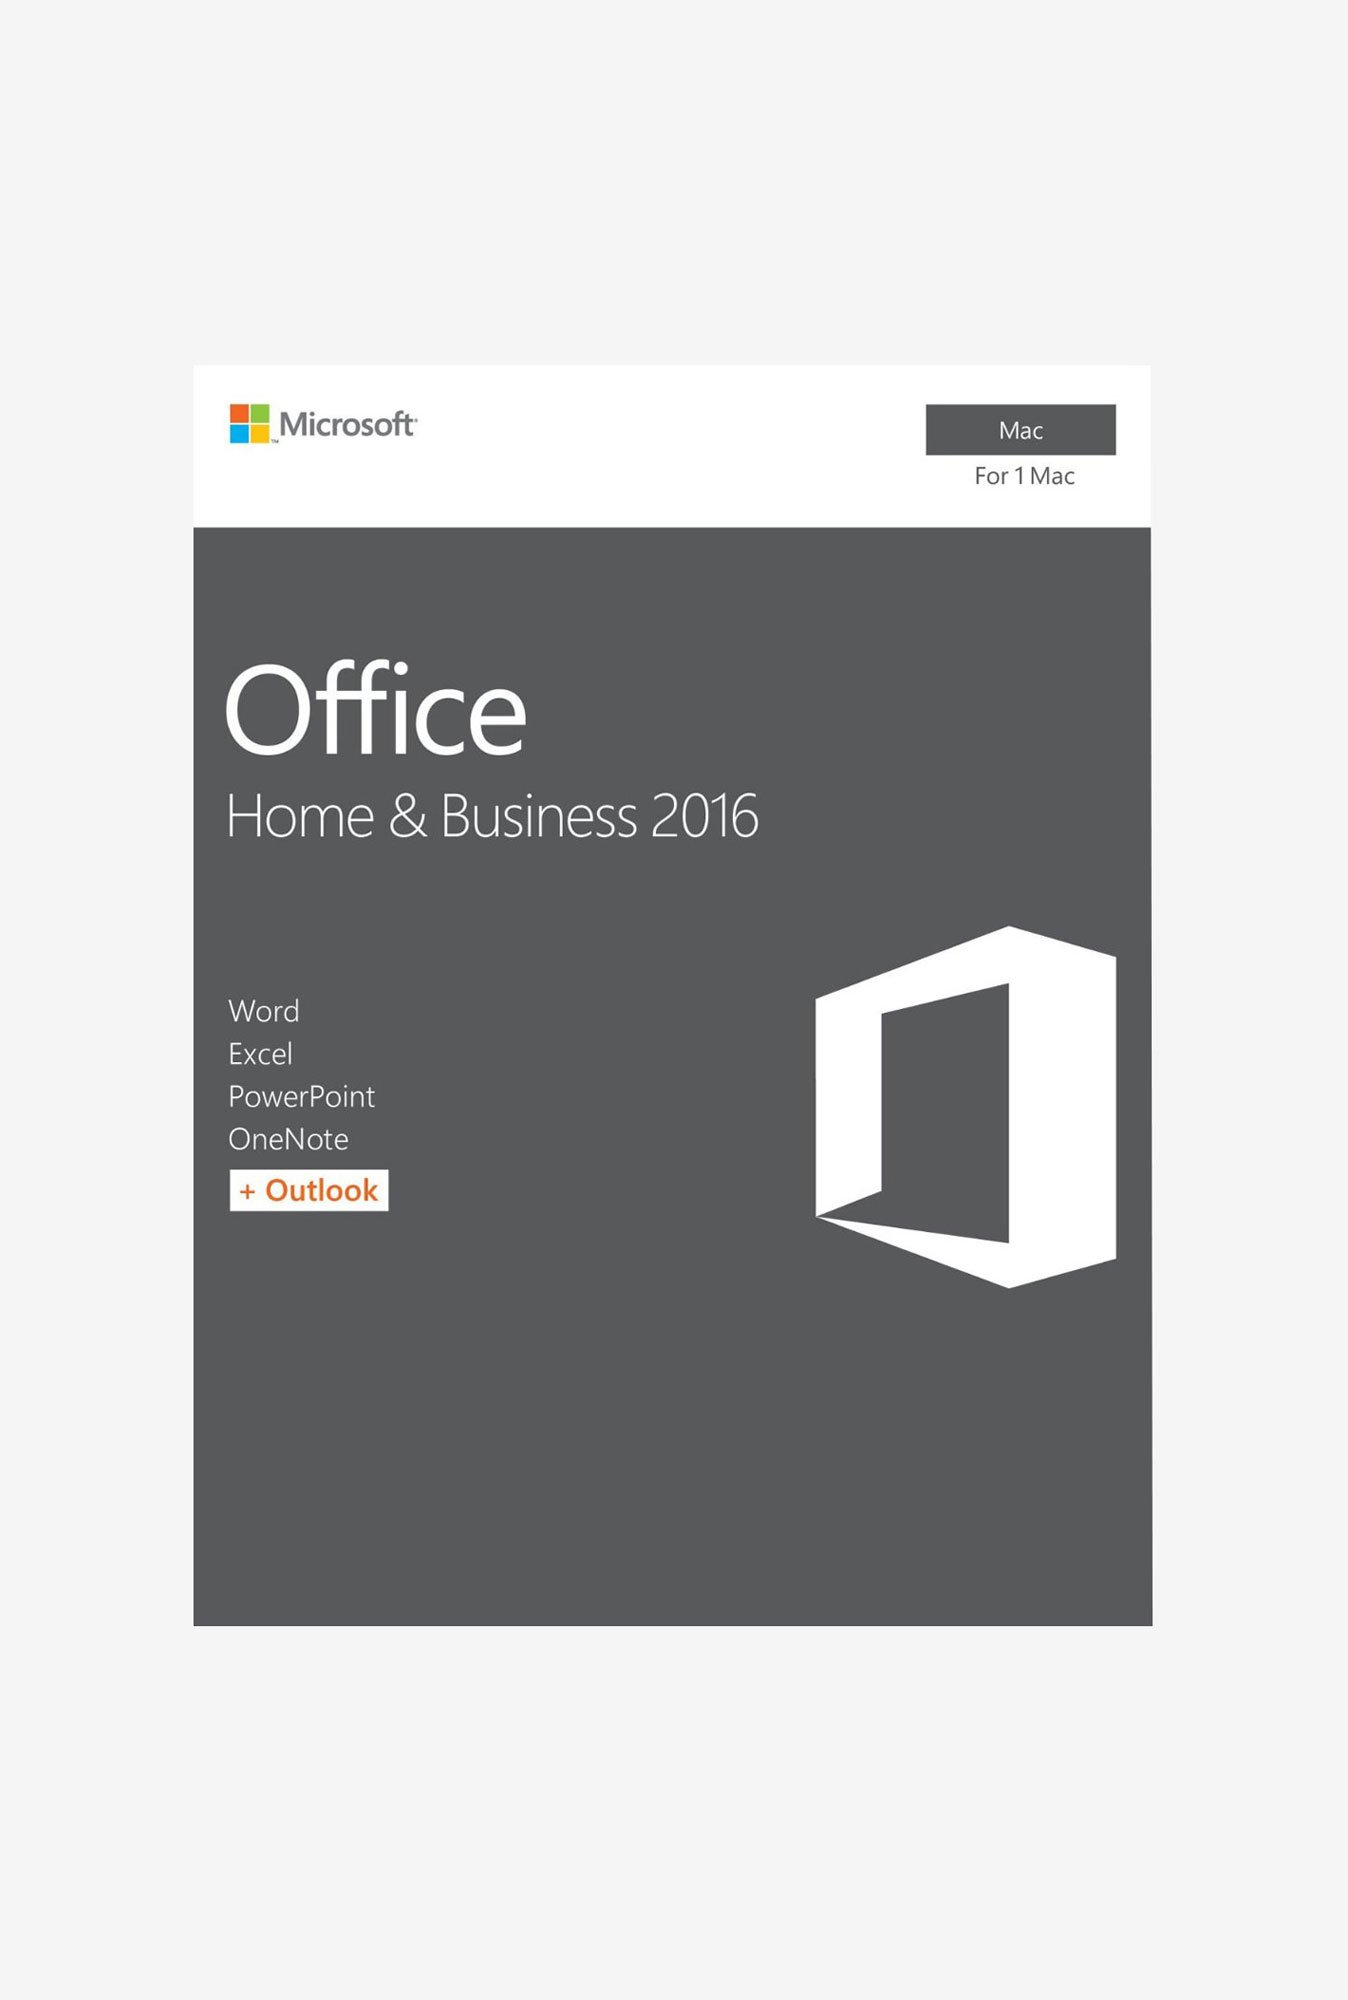 Microsoft Office Home & Business 2016 P2 for Mac with One Drive